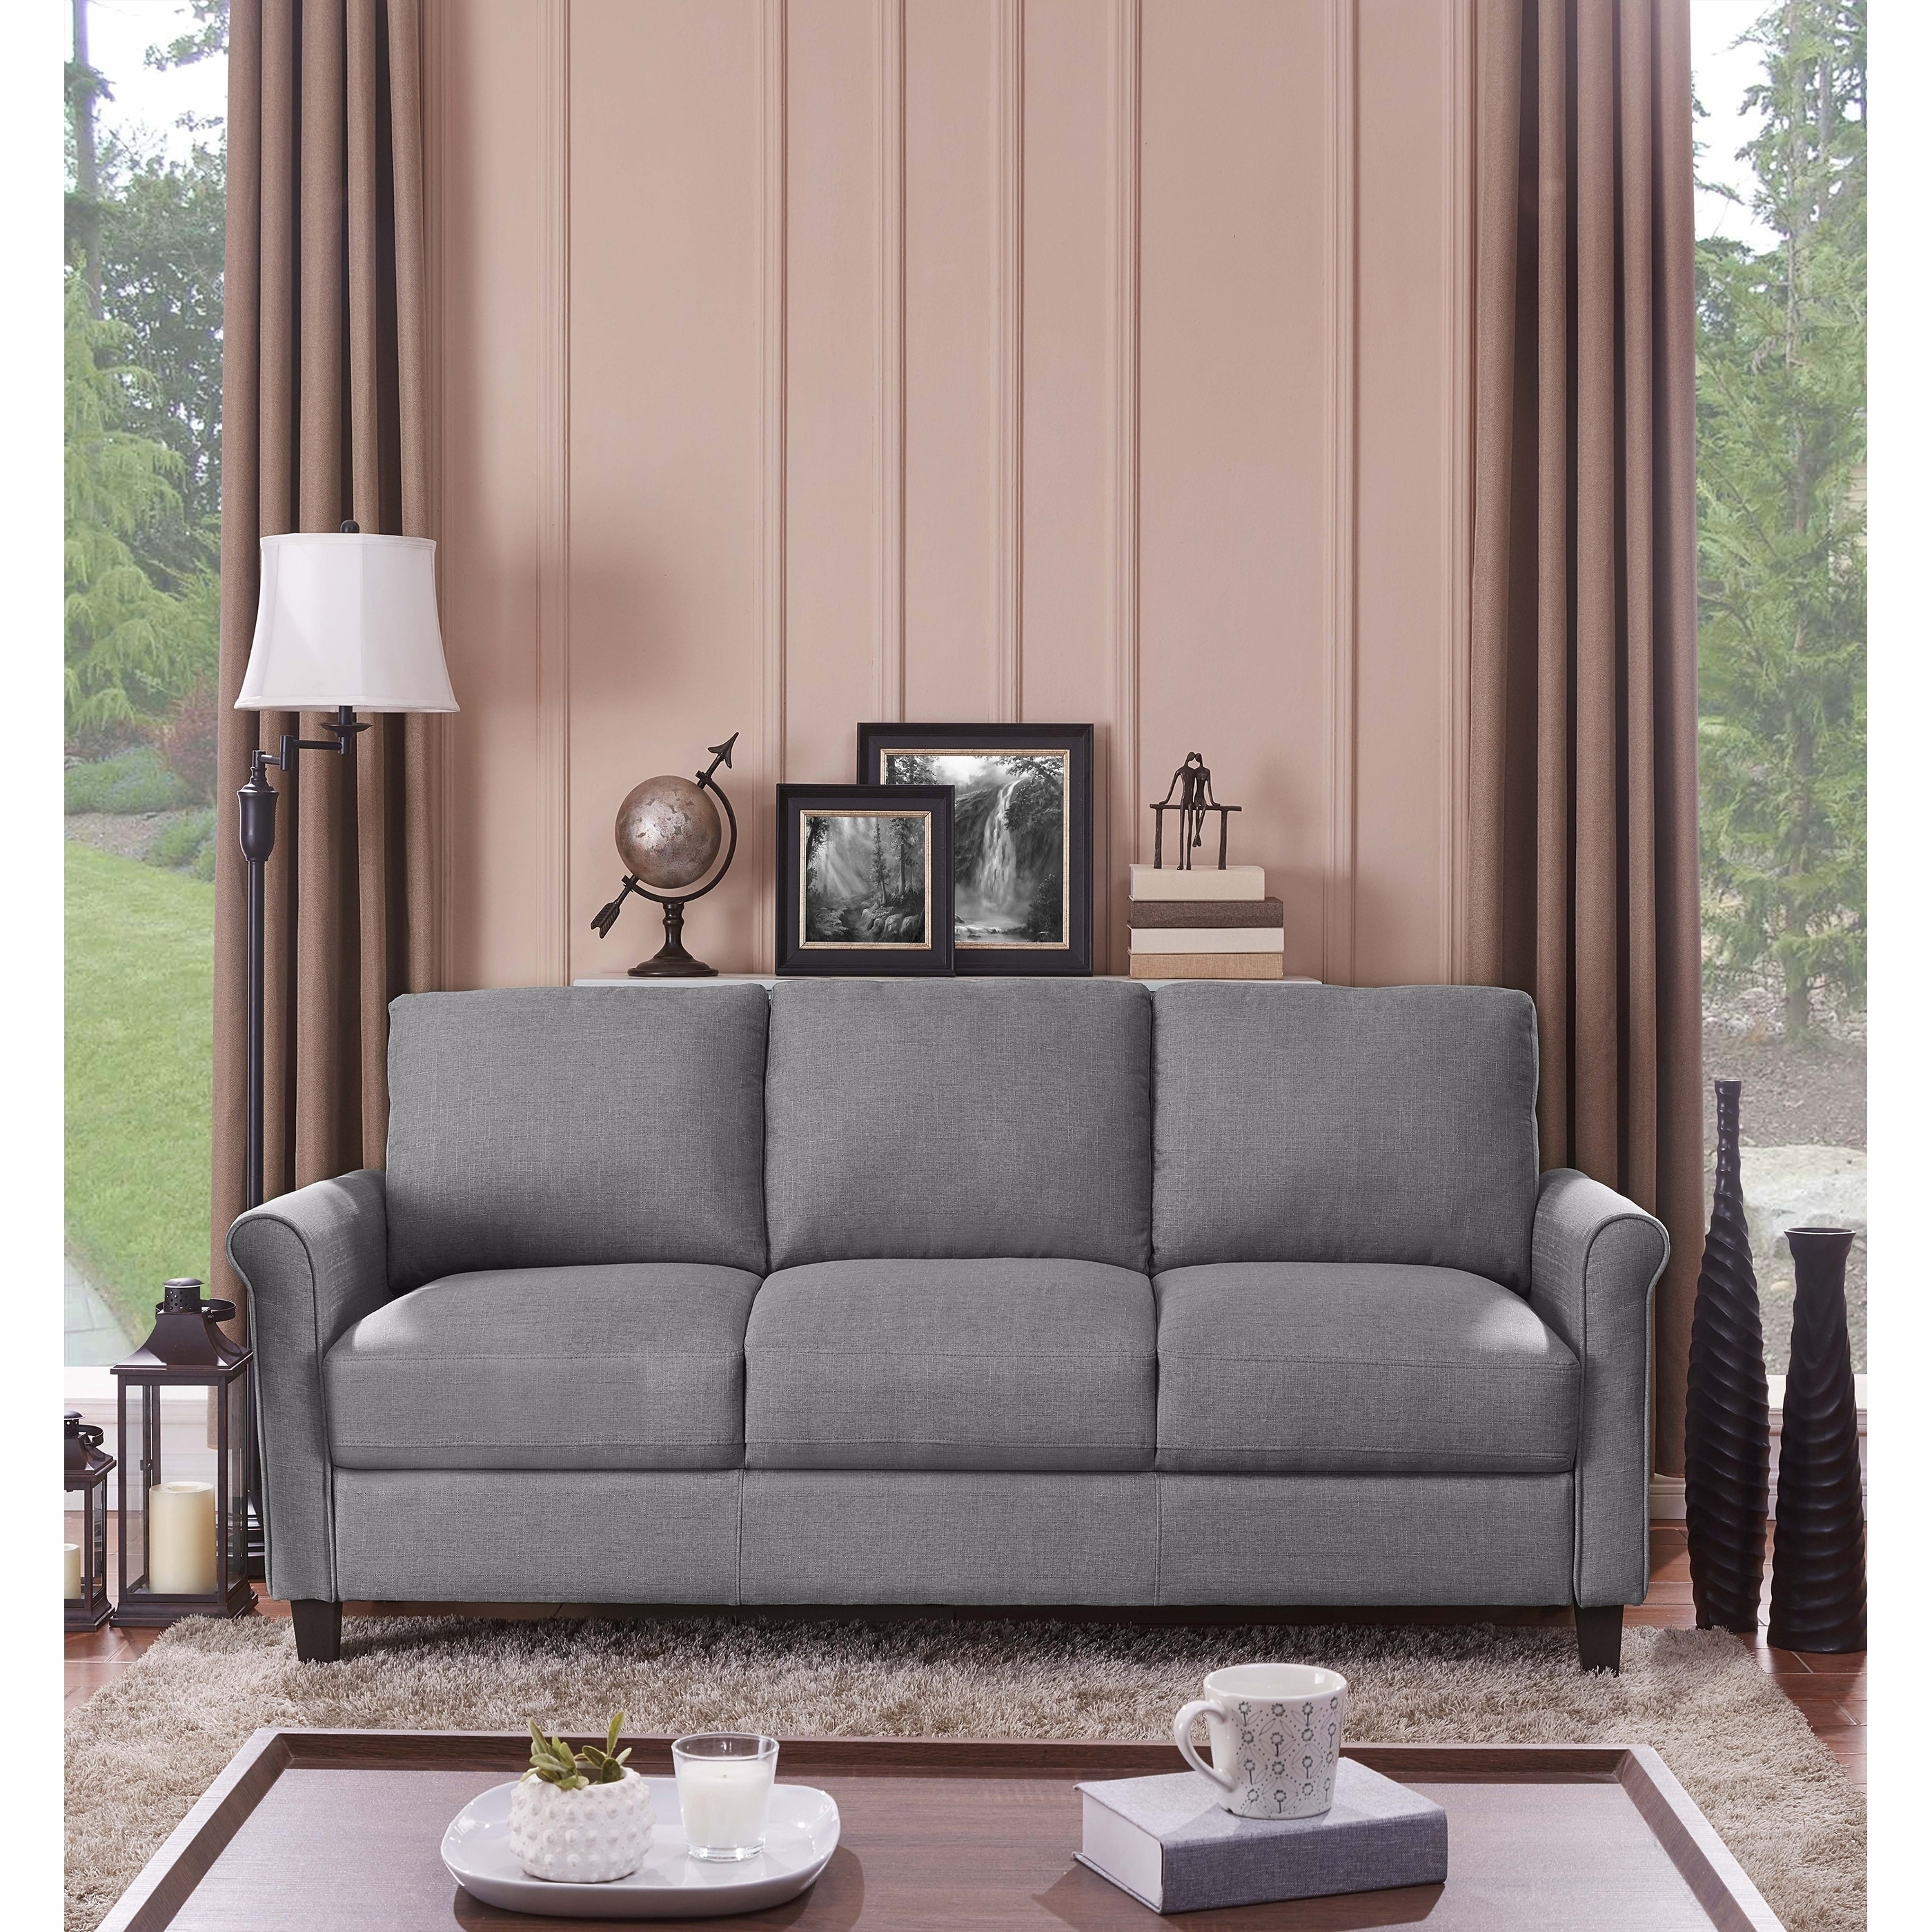 Details About Handy Living Calhan Grey Textured Linen Sofa Grey